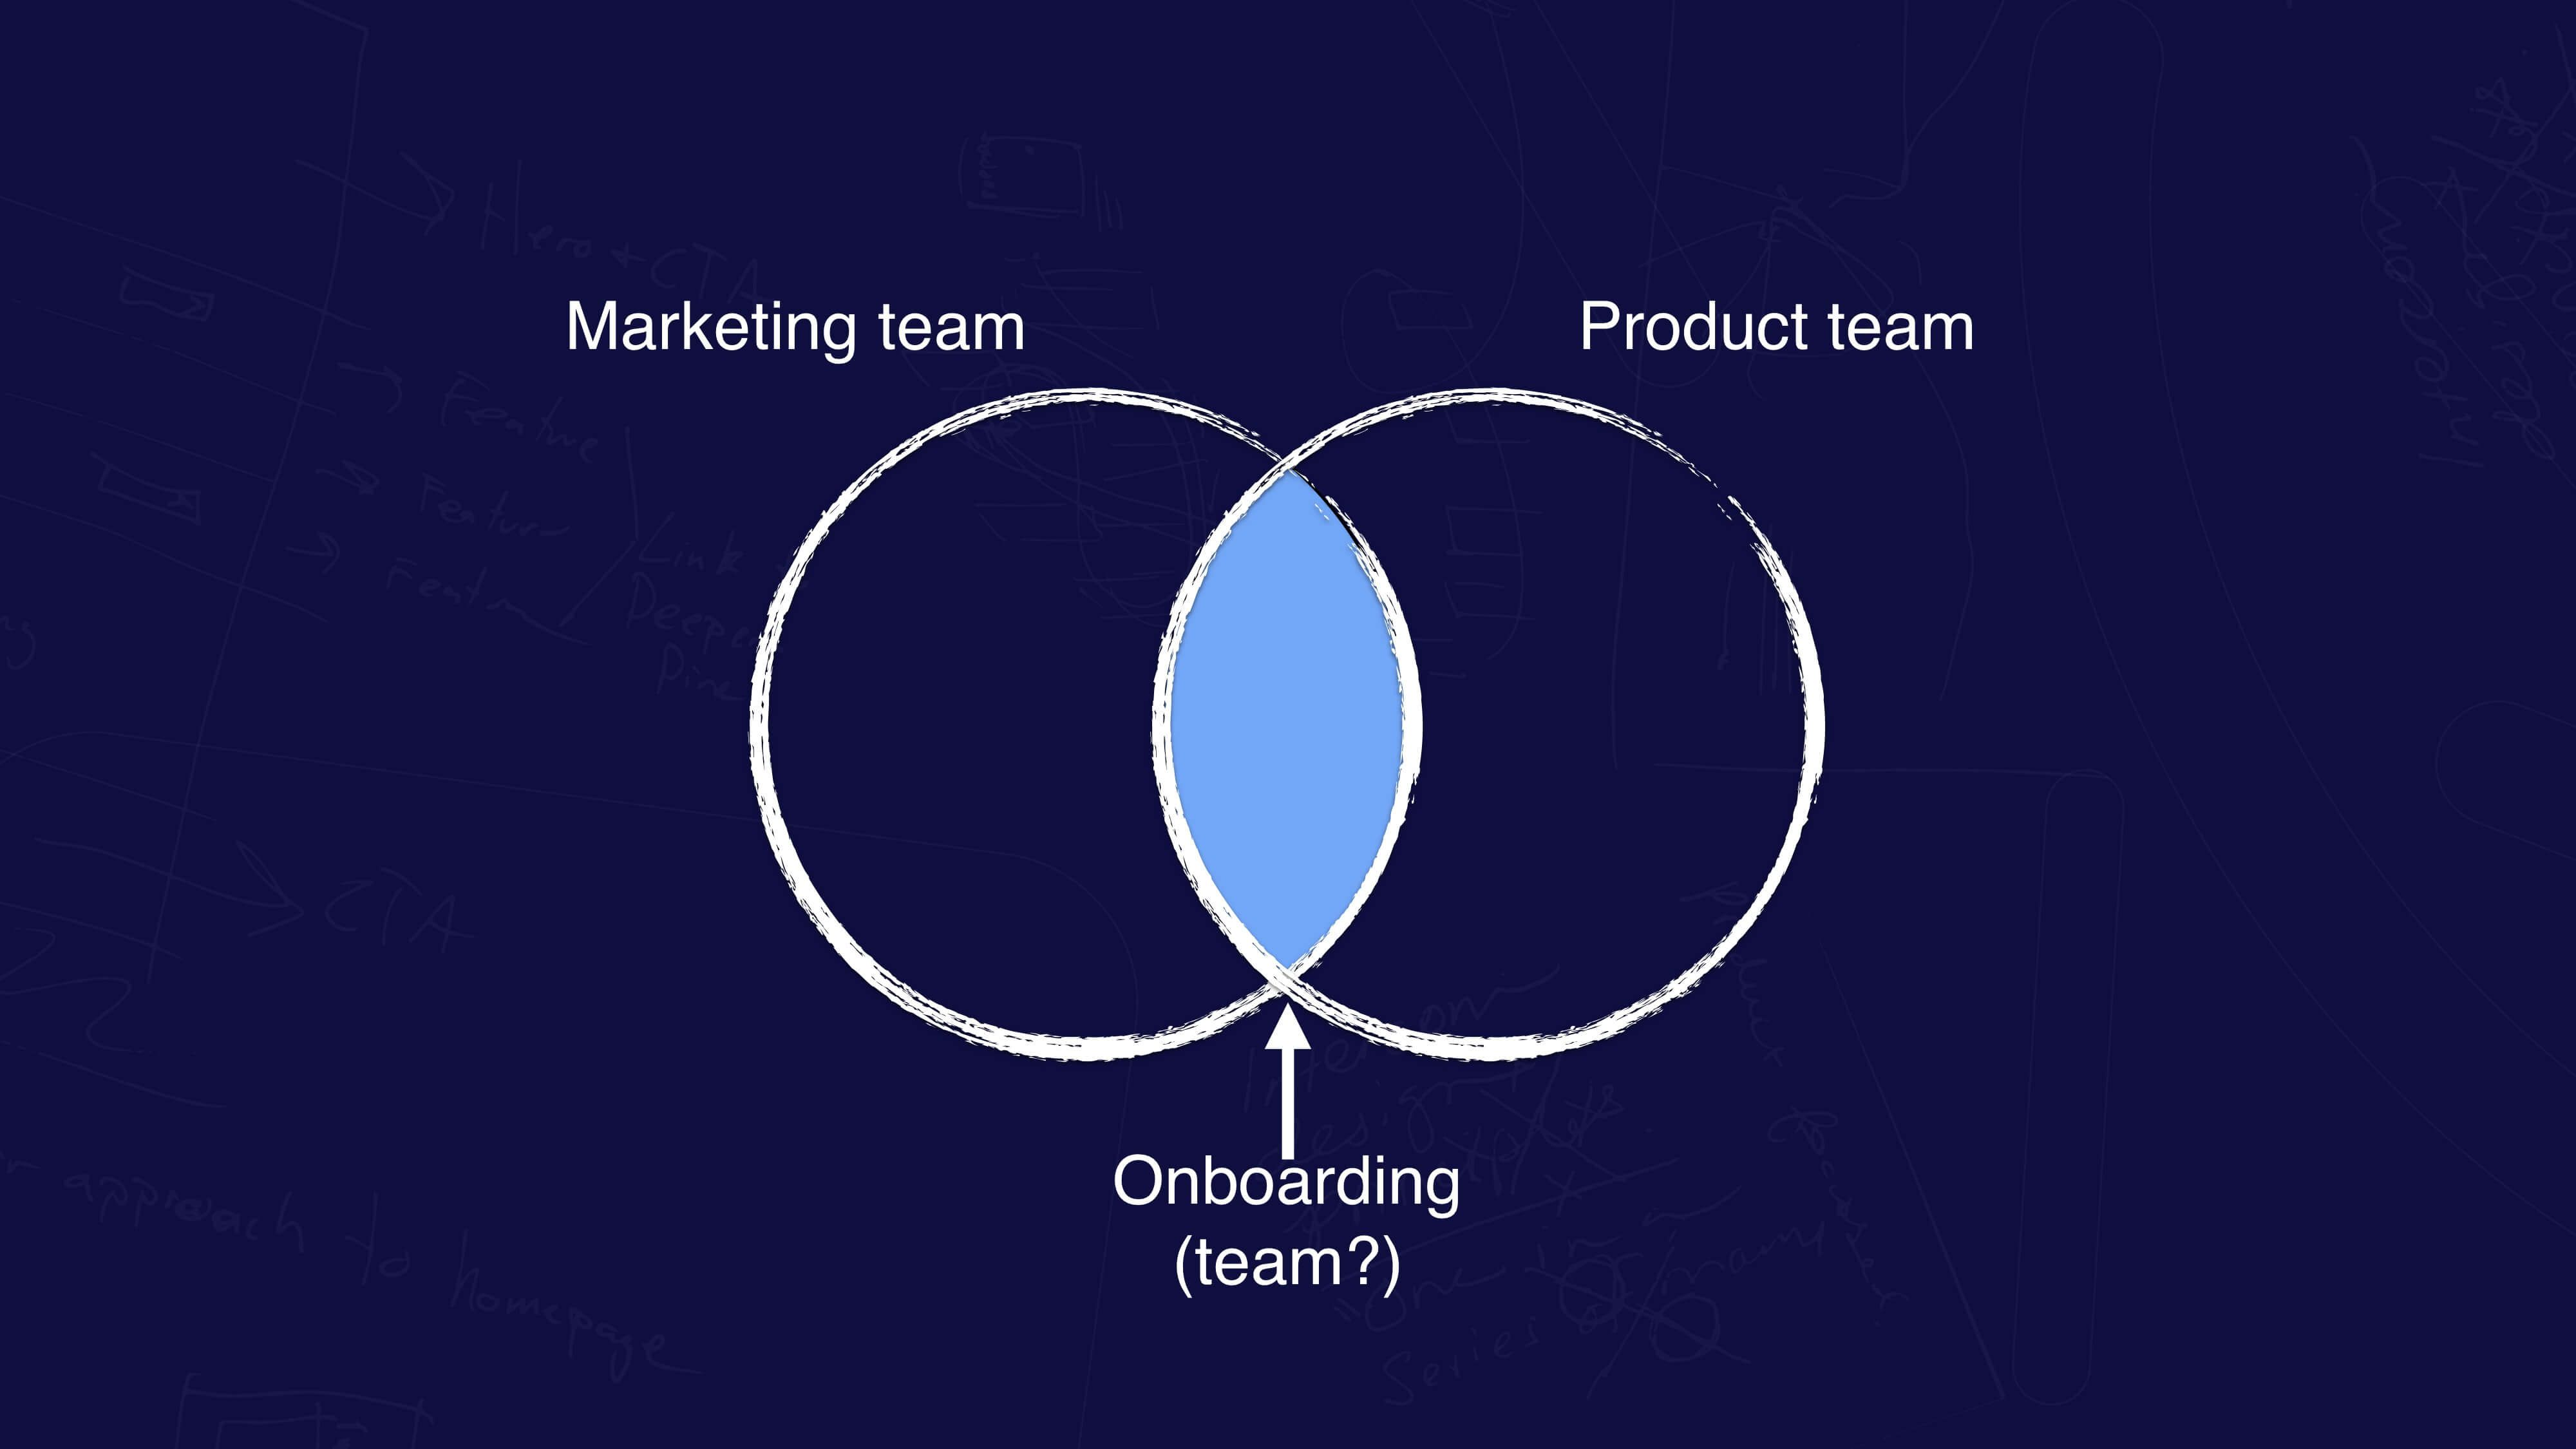 Onboarding should sit somewhere between product and marketing in your company.